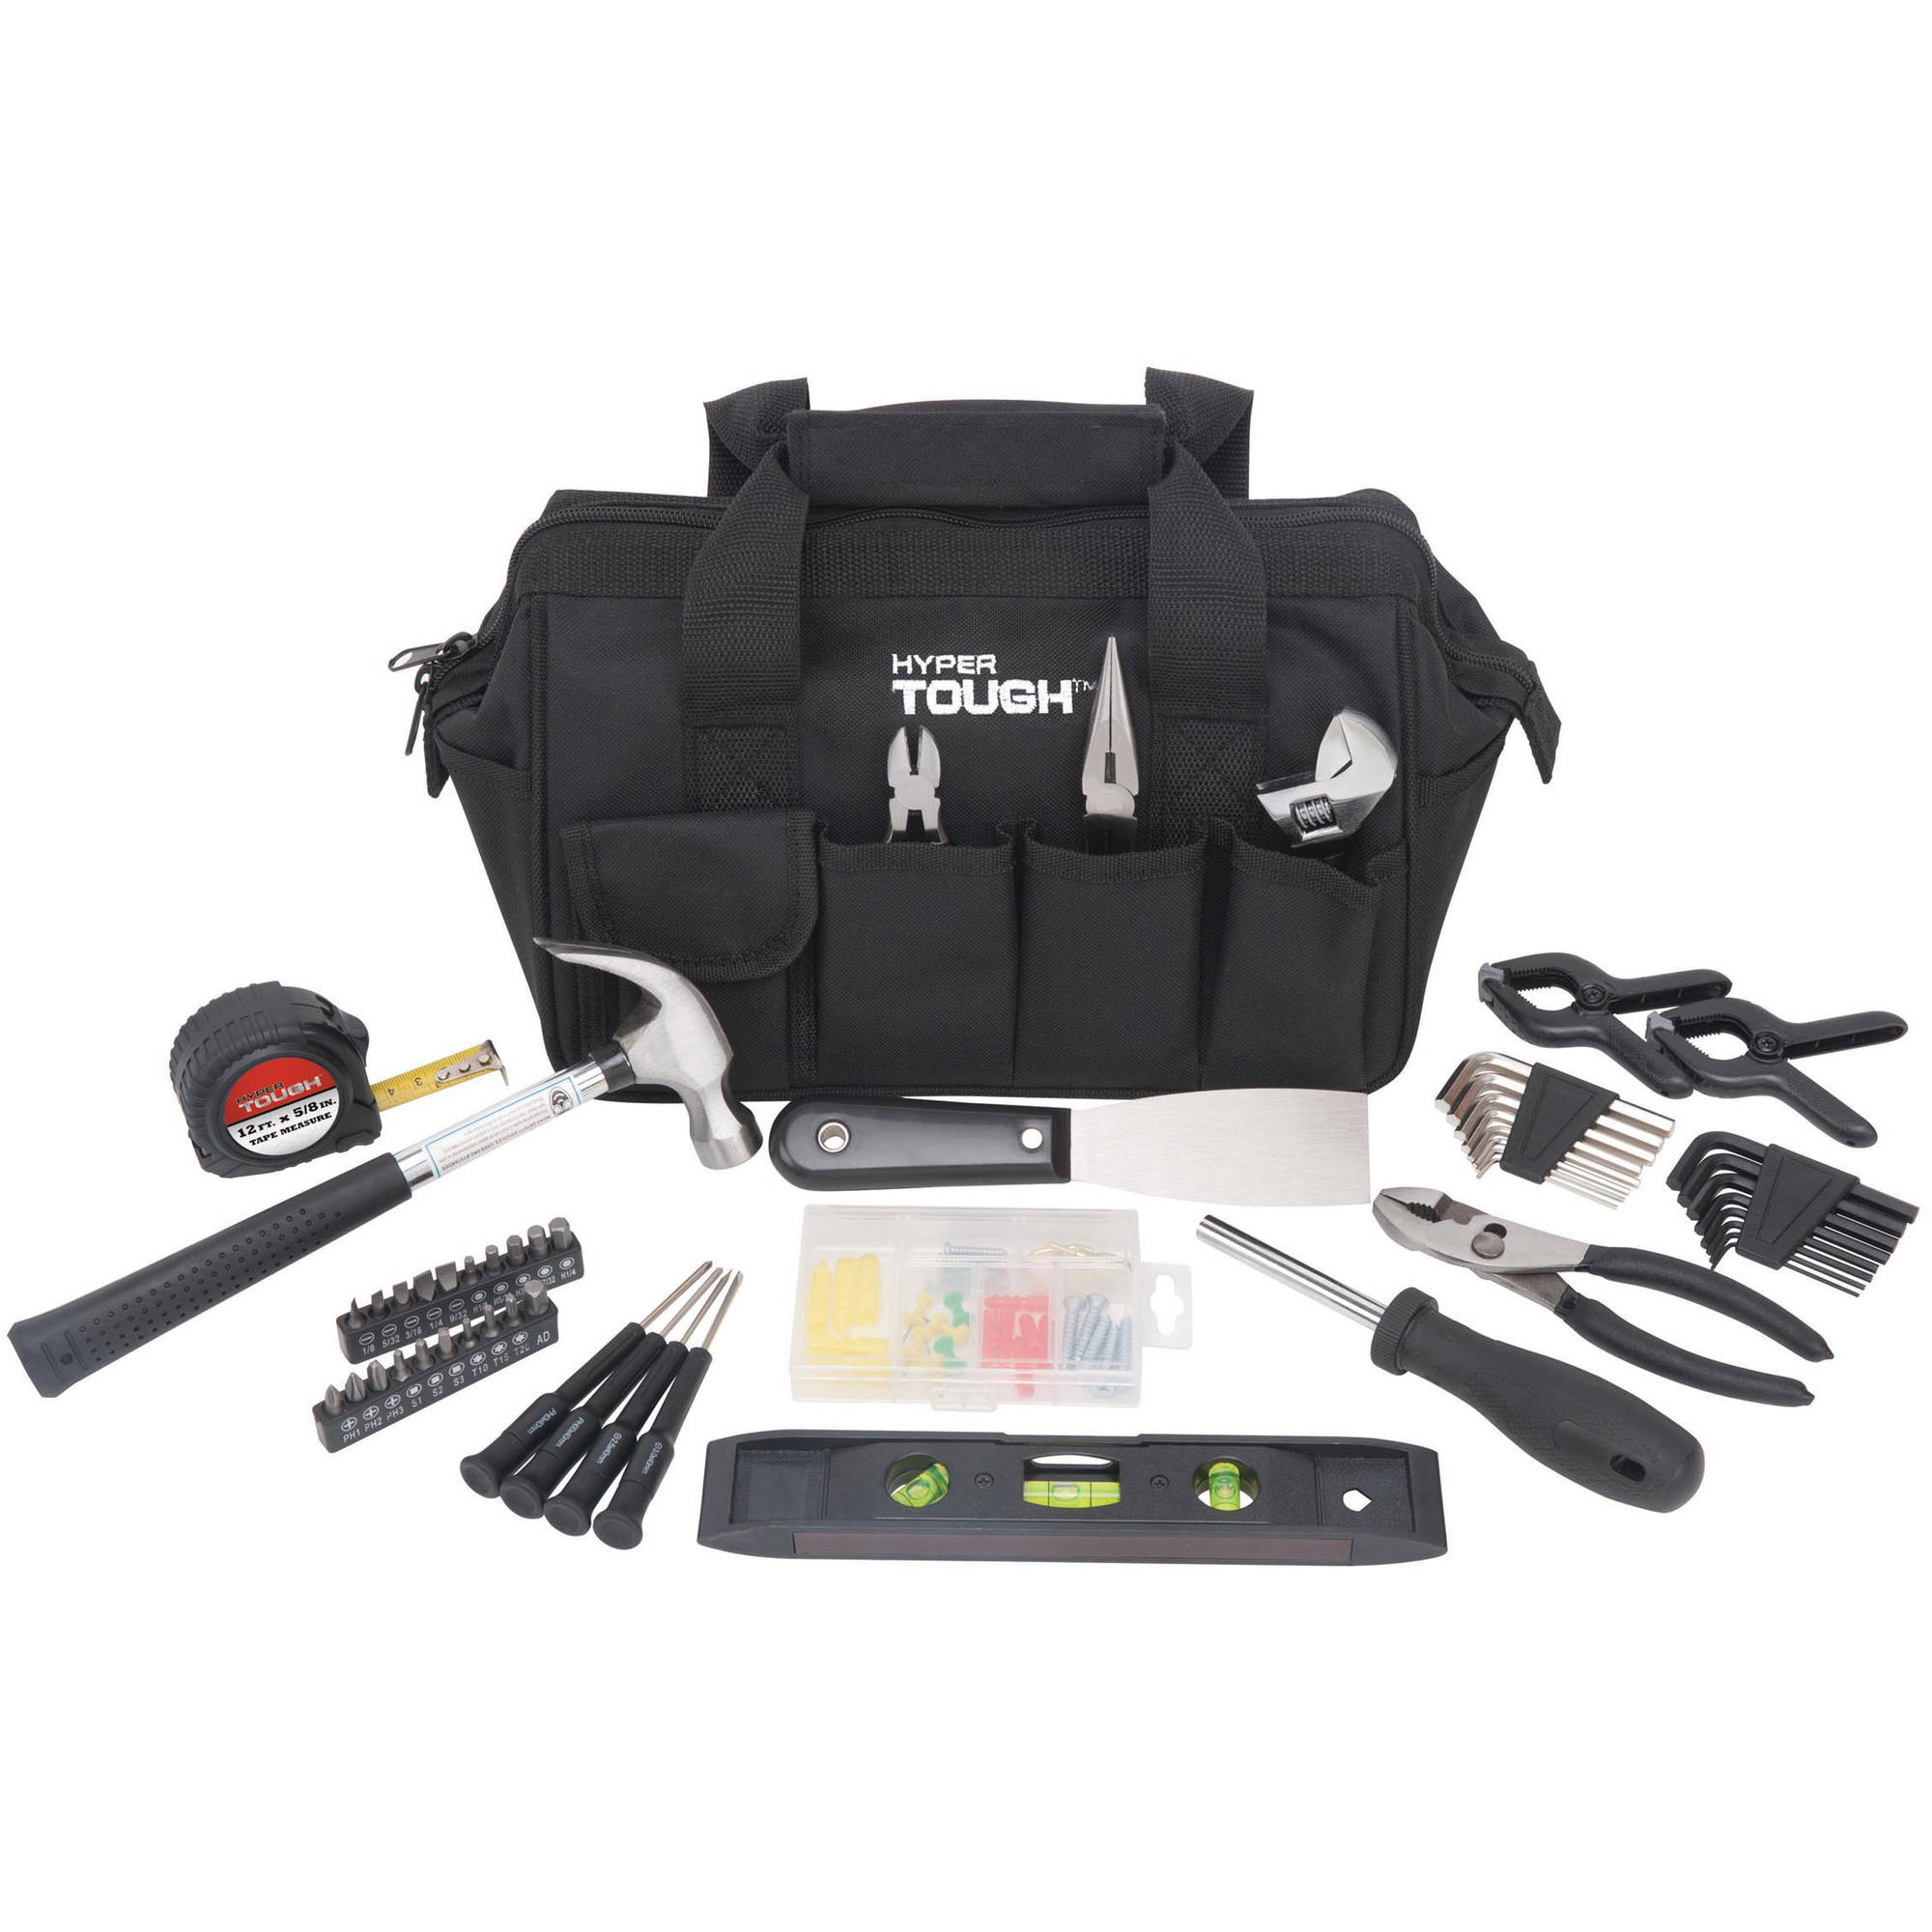 Hyper Tough 53-Piece Home Repair Tool Set, Black